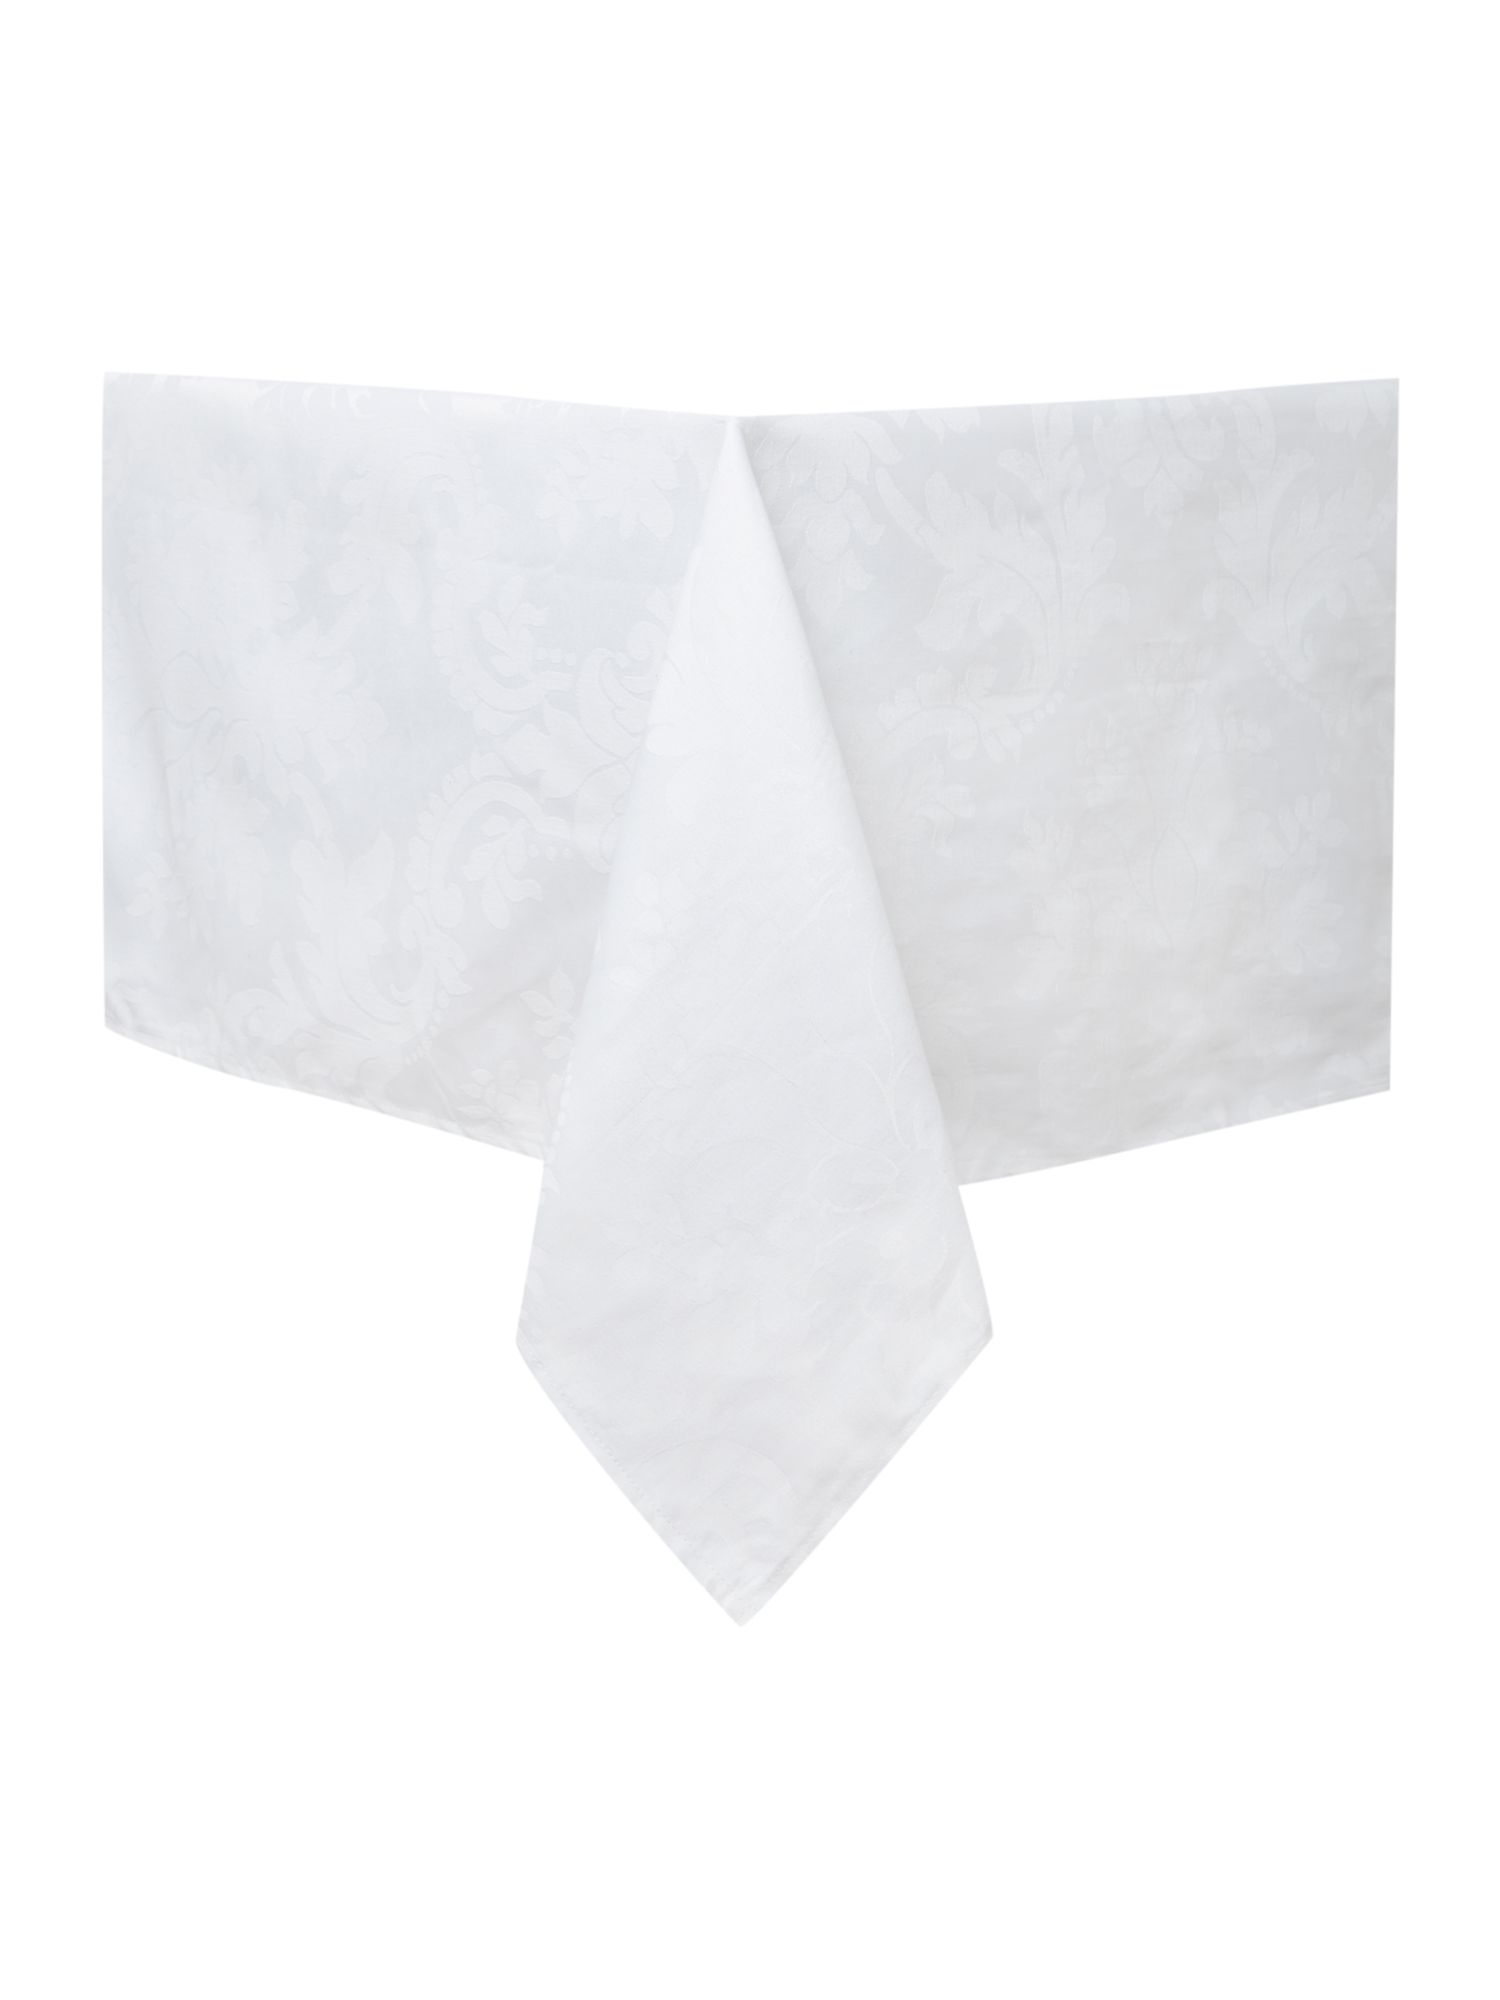 White Cambridge Tablelinen Range